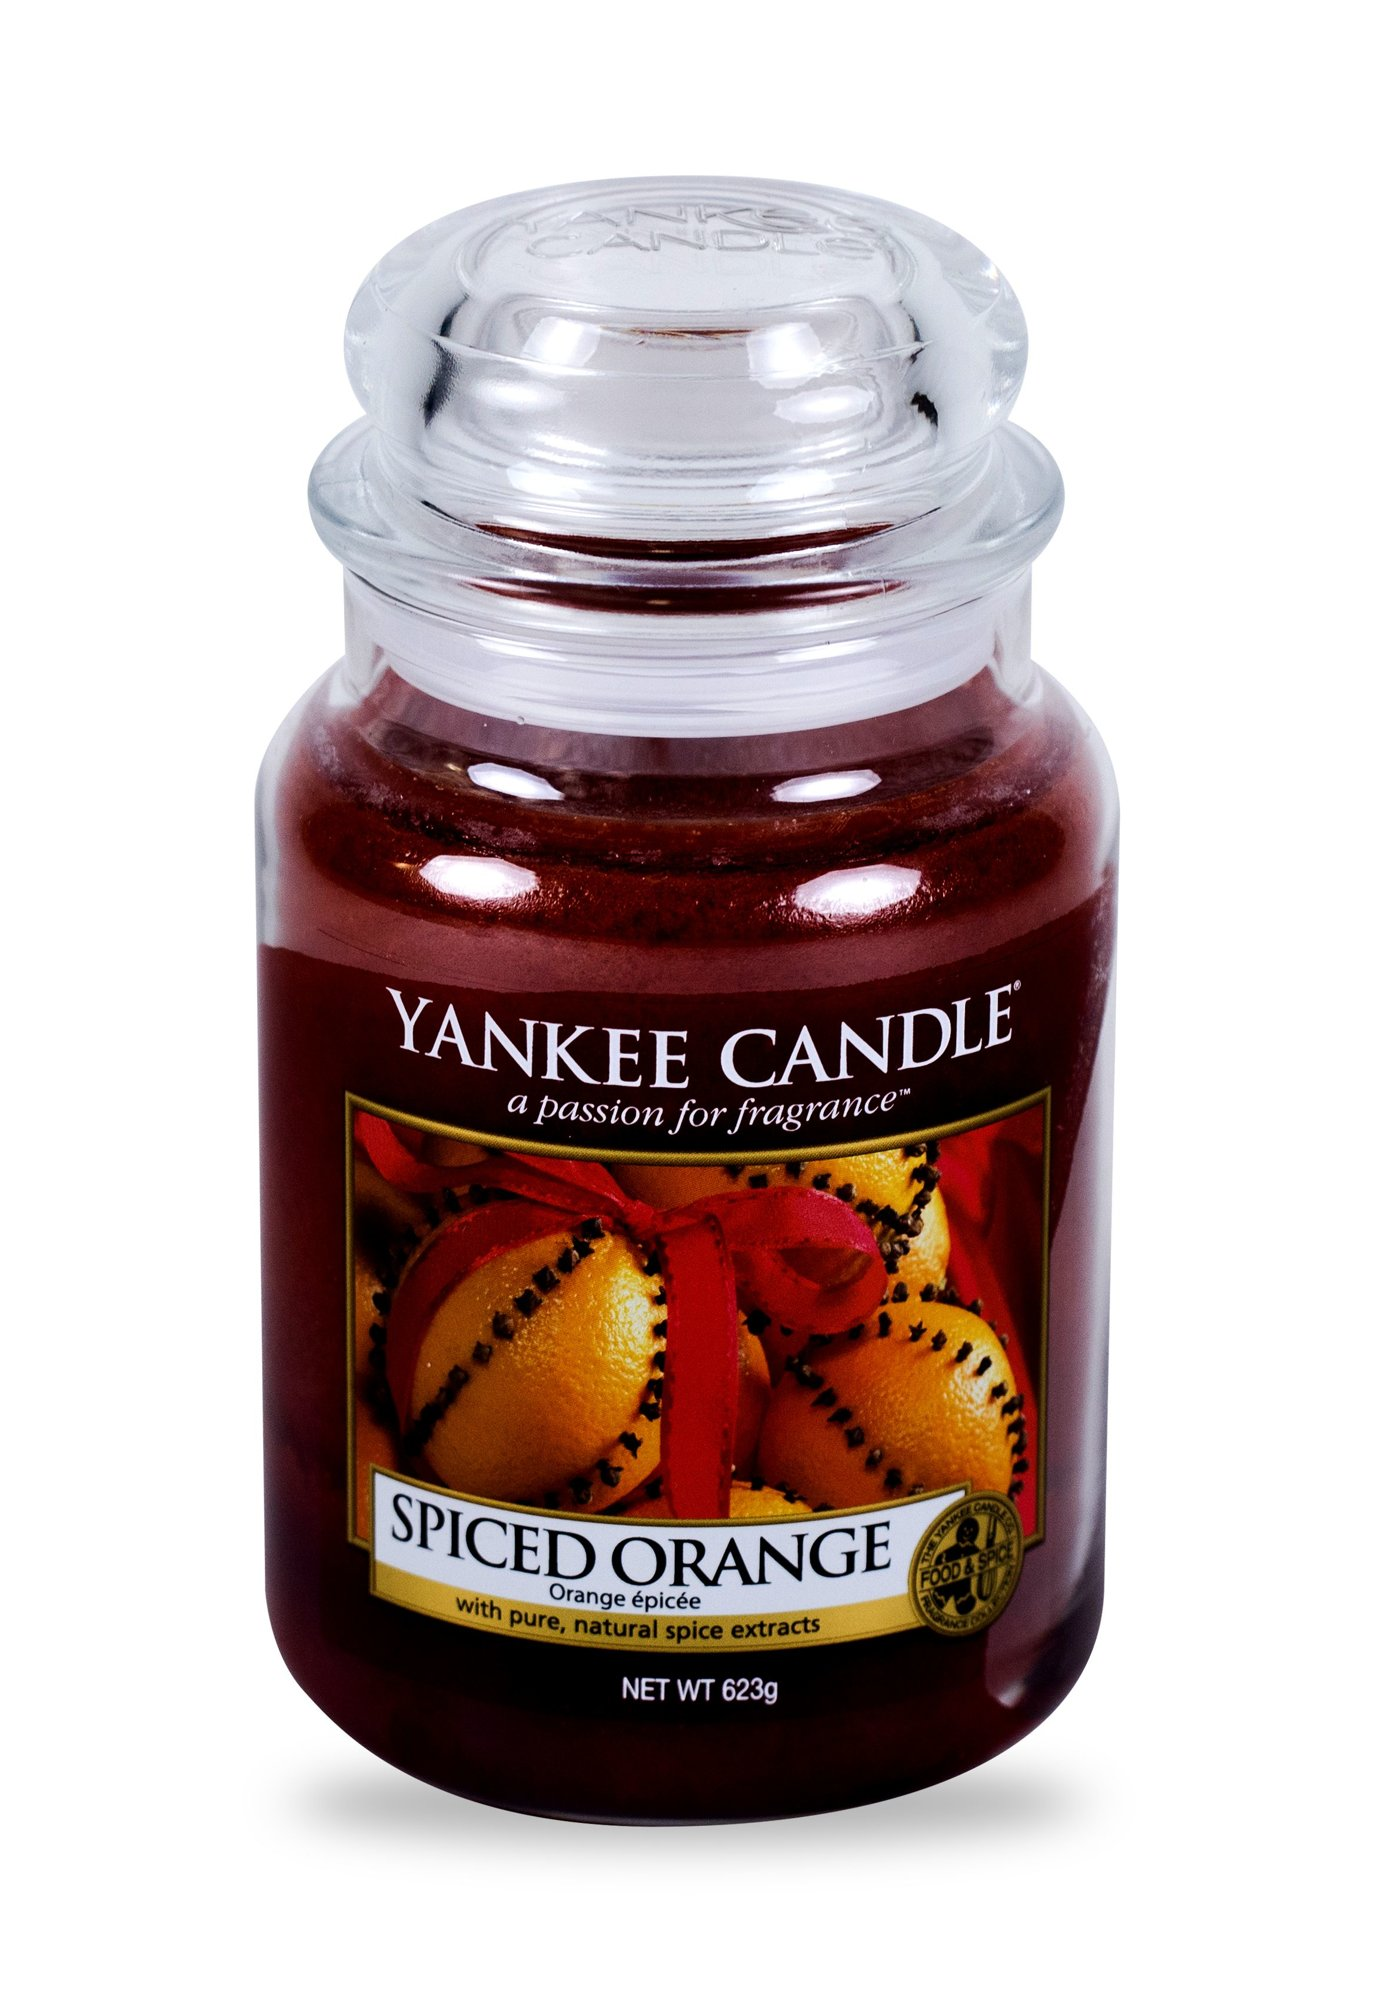 Yankee Candle Spiced Orange Scented Candle 623ml